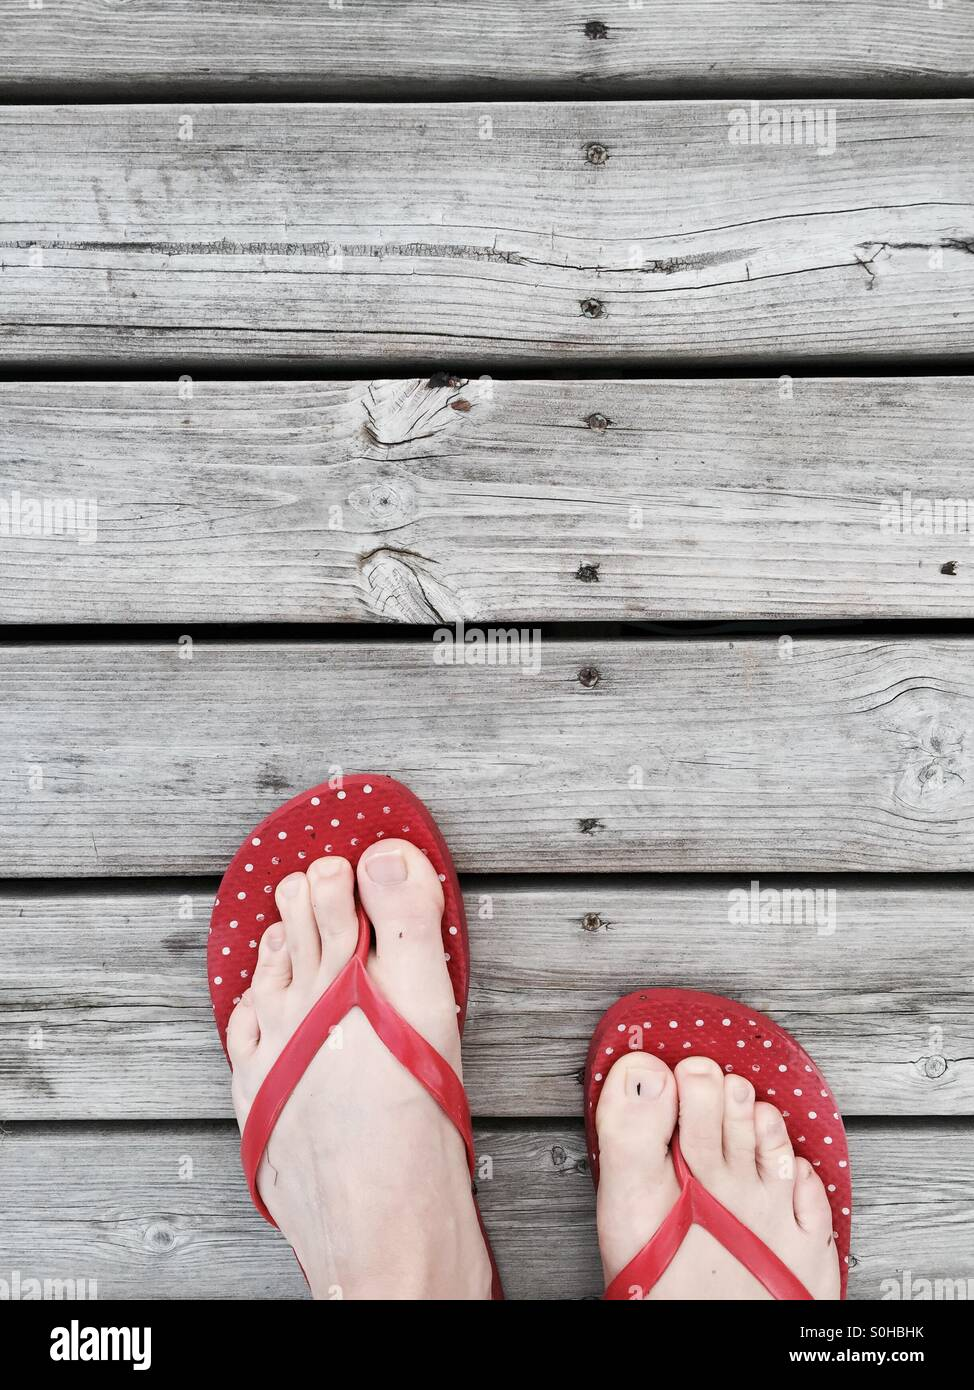 Red flip flops on a wooden wharf in summer cottage, Finland - Stock Image